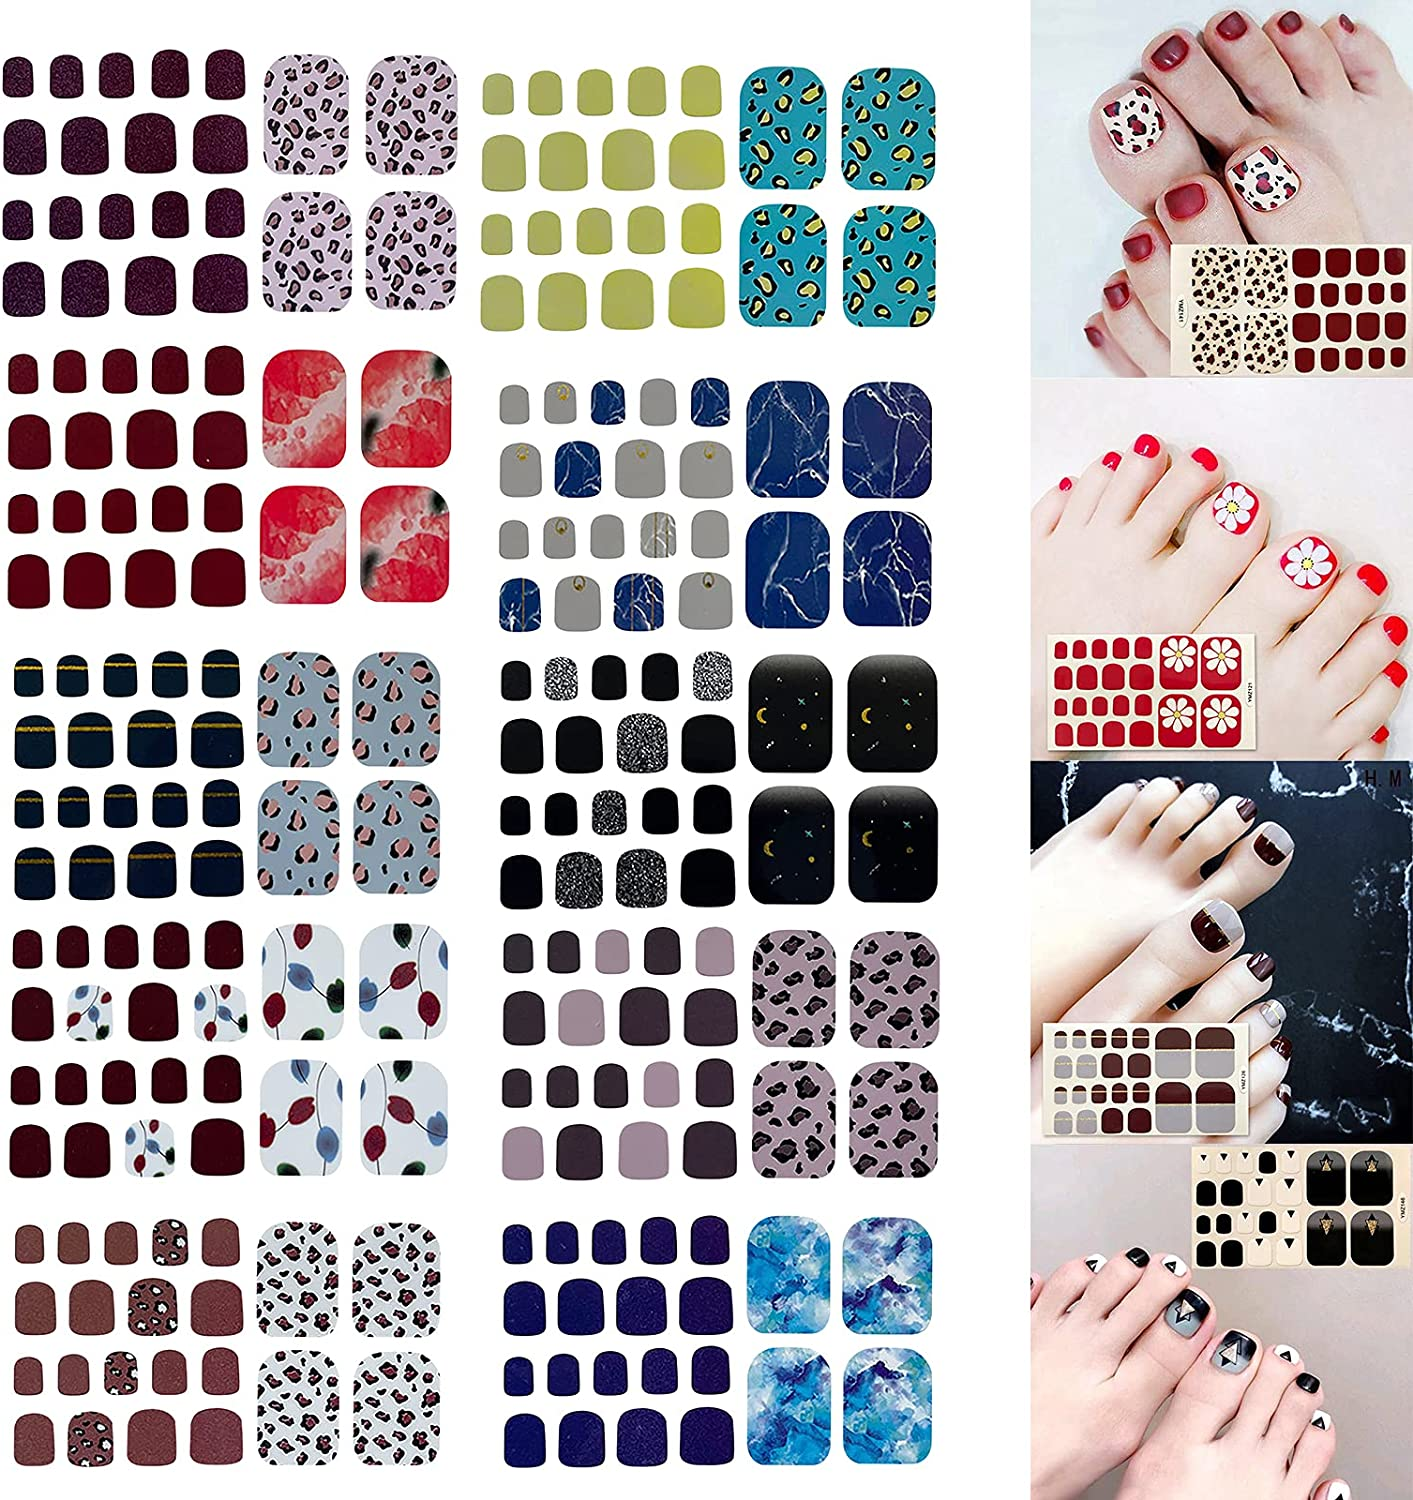 JHKUNO At the price Max 68% OFF Toe Nail Stickers for DIY Wra Adhesive Full Art Self